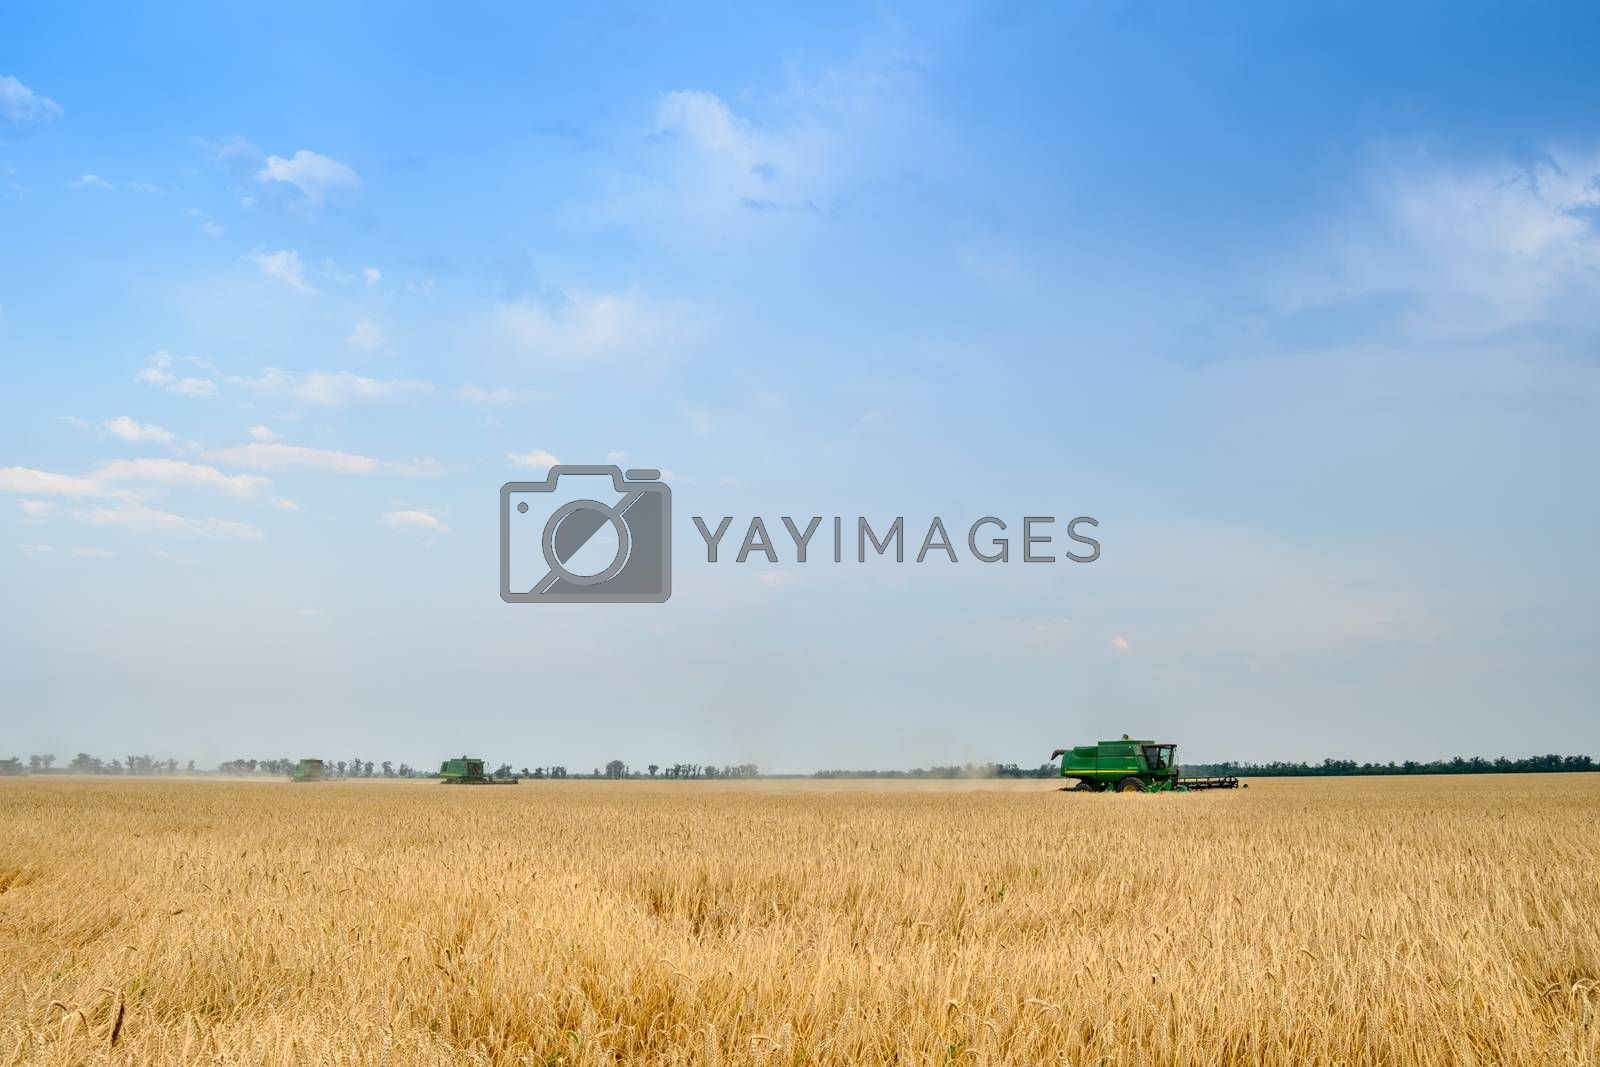 Four Combine Harvesters Harvesting Wheat in the Field under Blue Sky